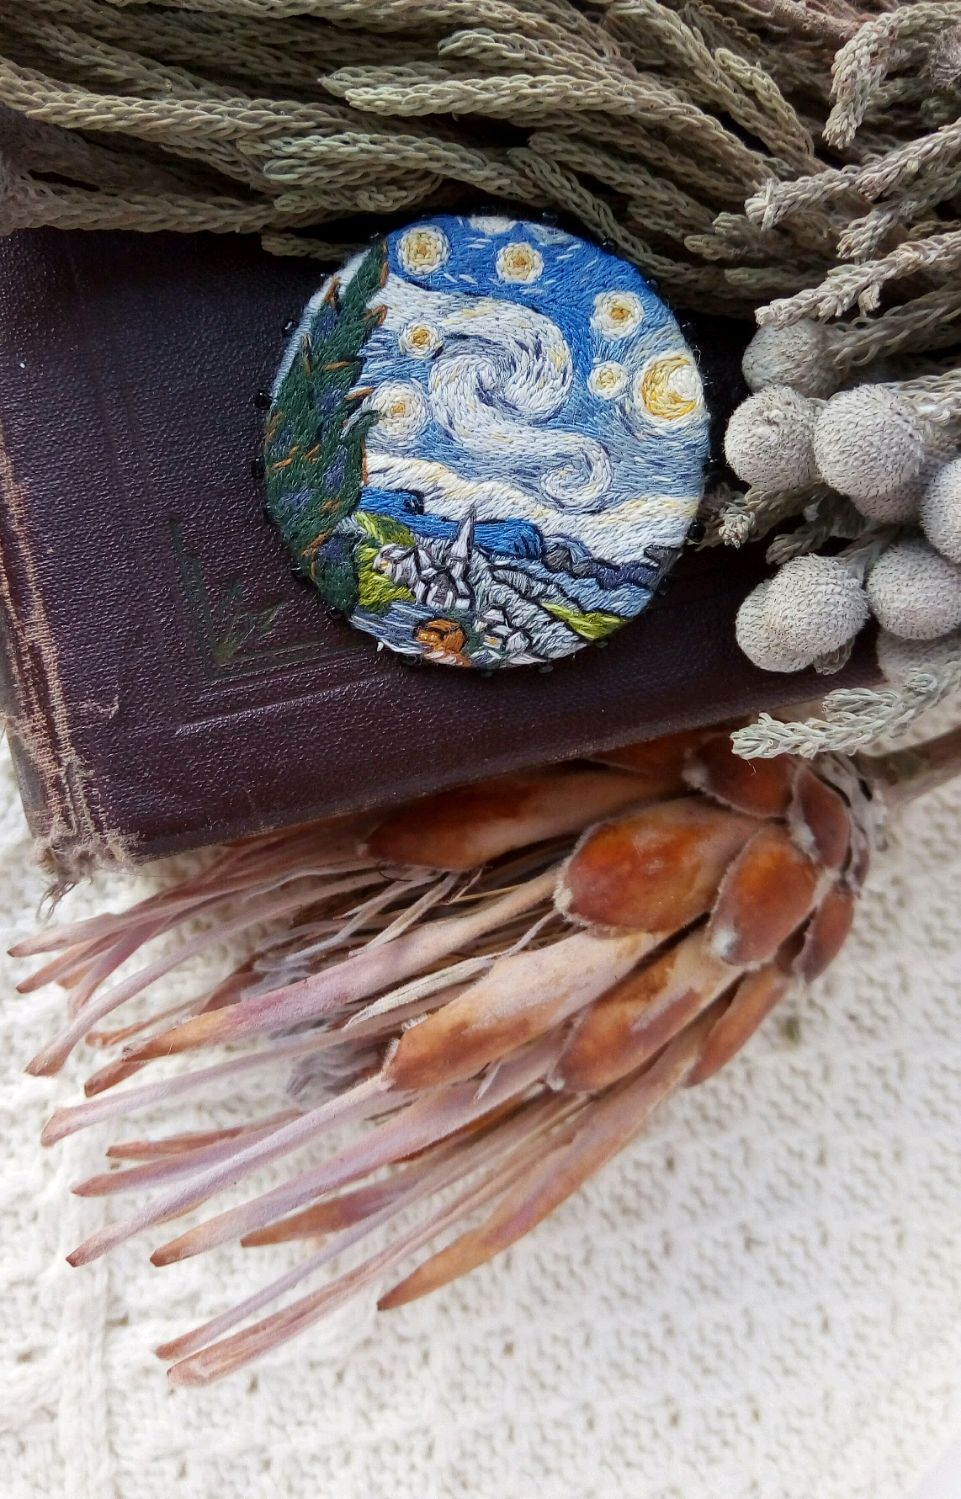 Embroidered Brooch Based On The Painting Quot The Starry Night